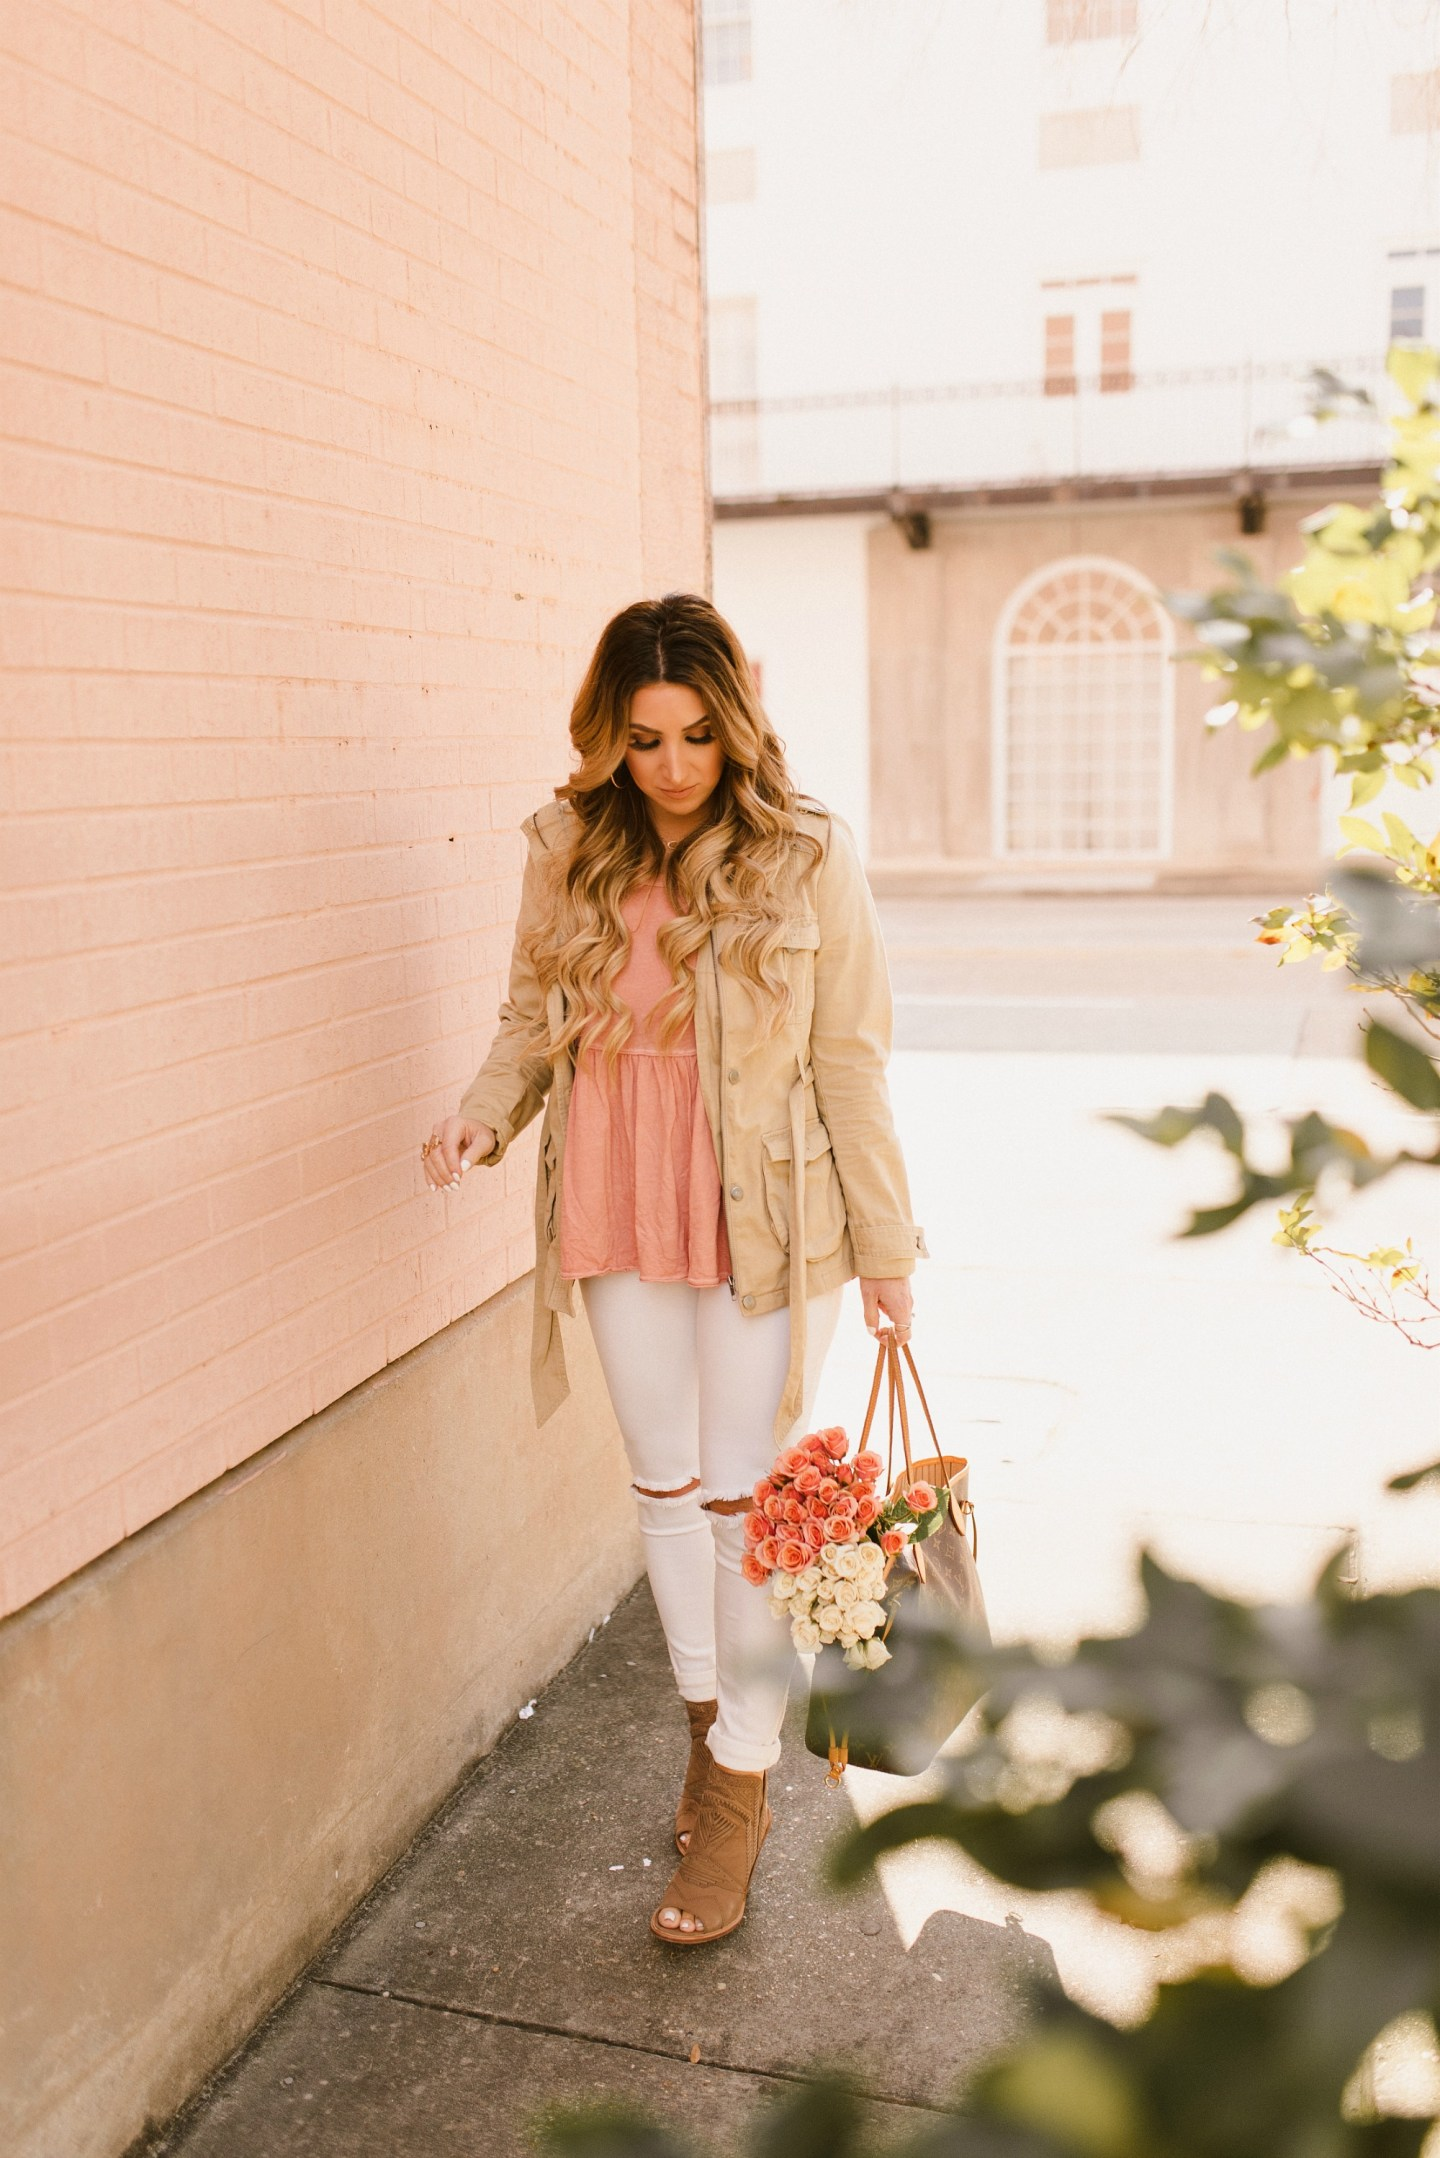 Blush Spring Outfit Ideas